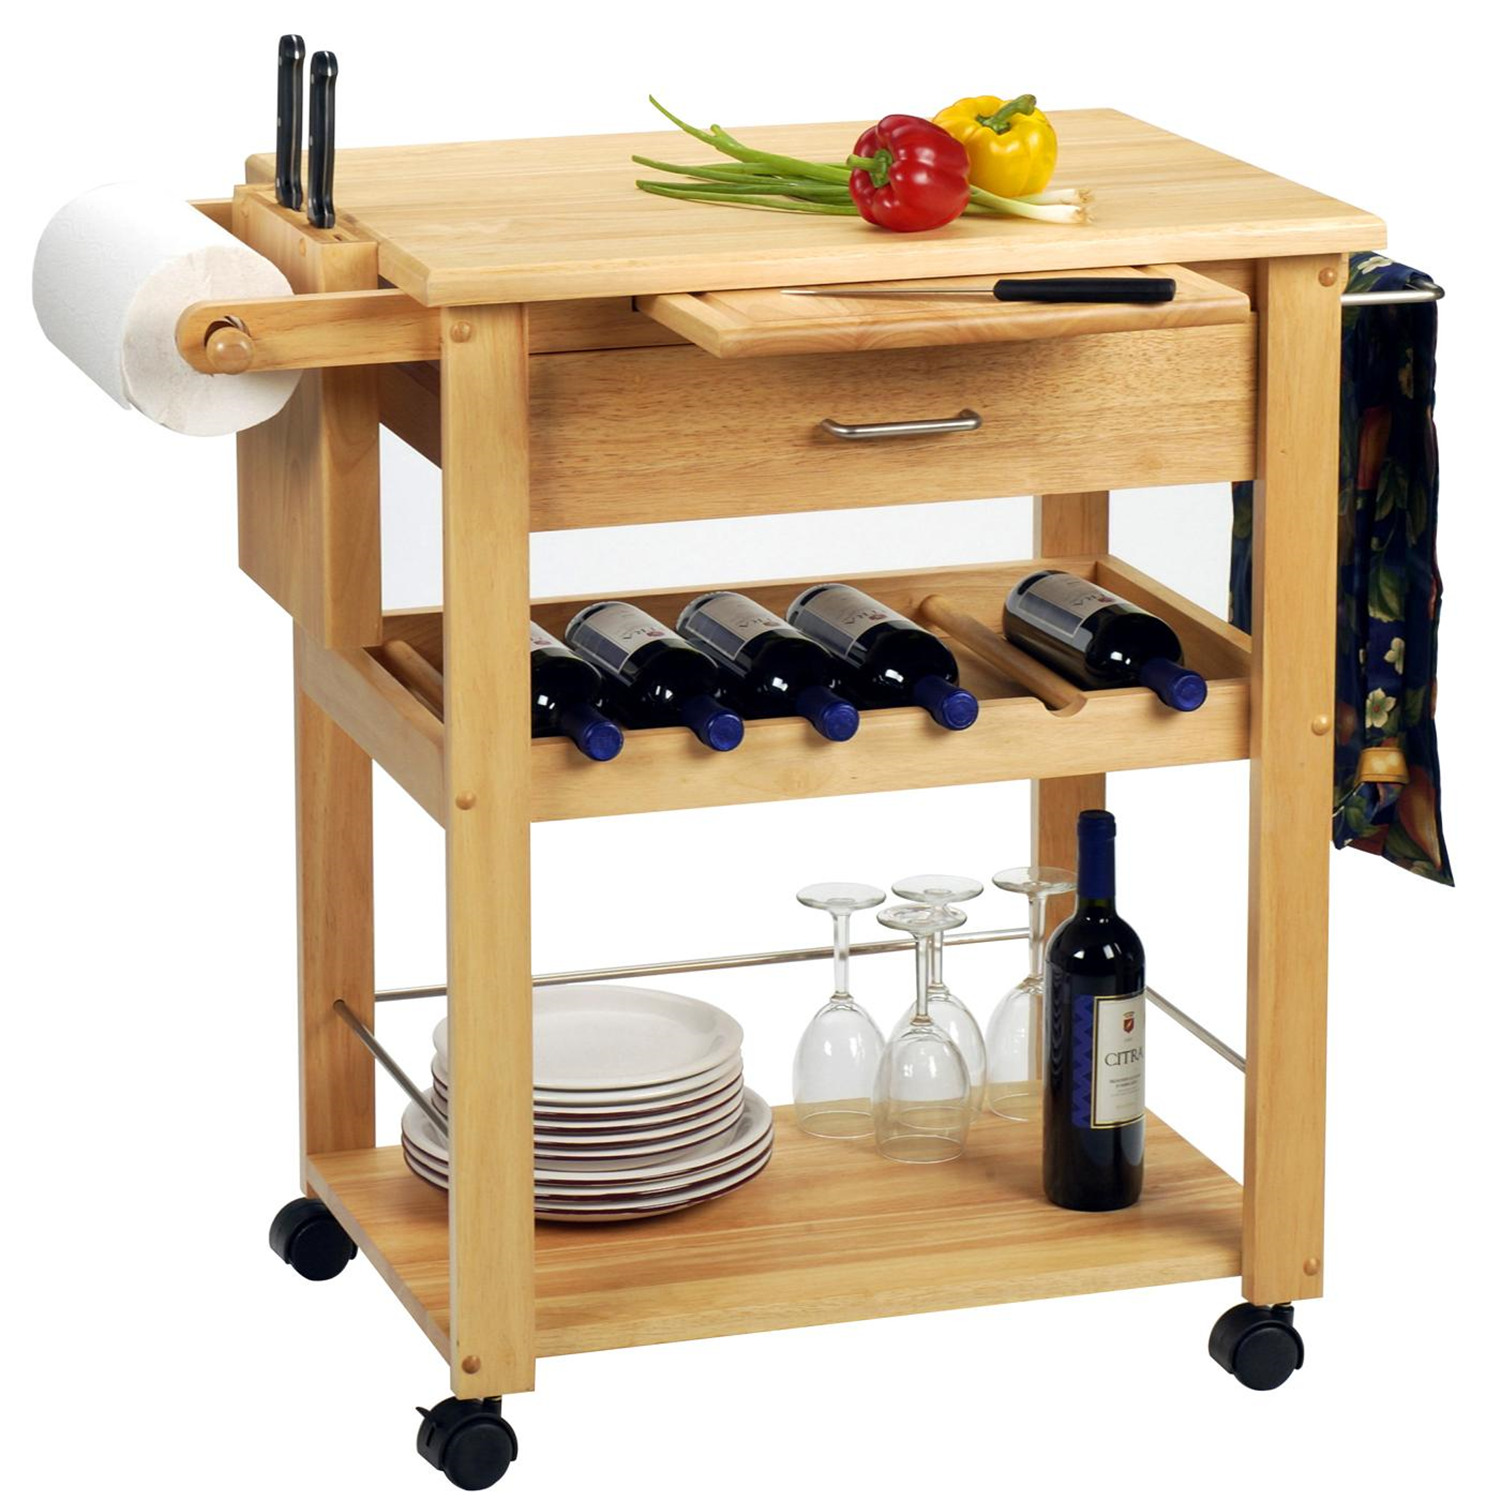 Winsome Deluxe Kitchen Cart by OJ Commerce 83634 - $252.99